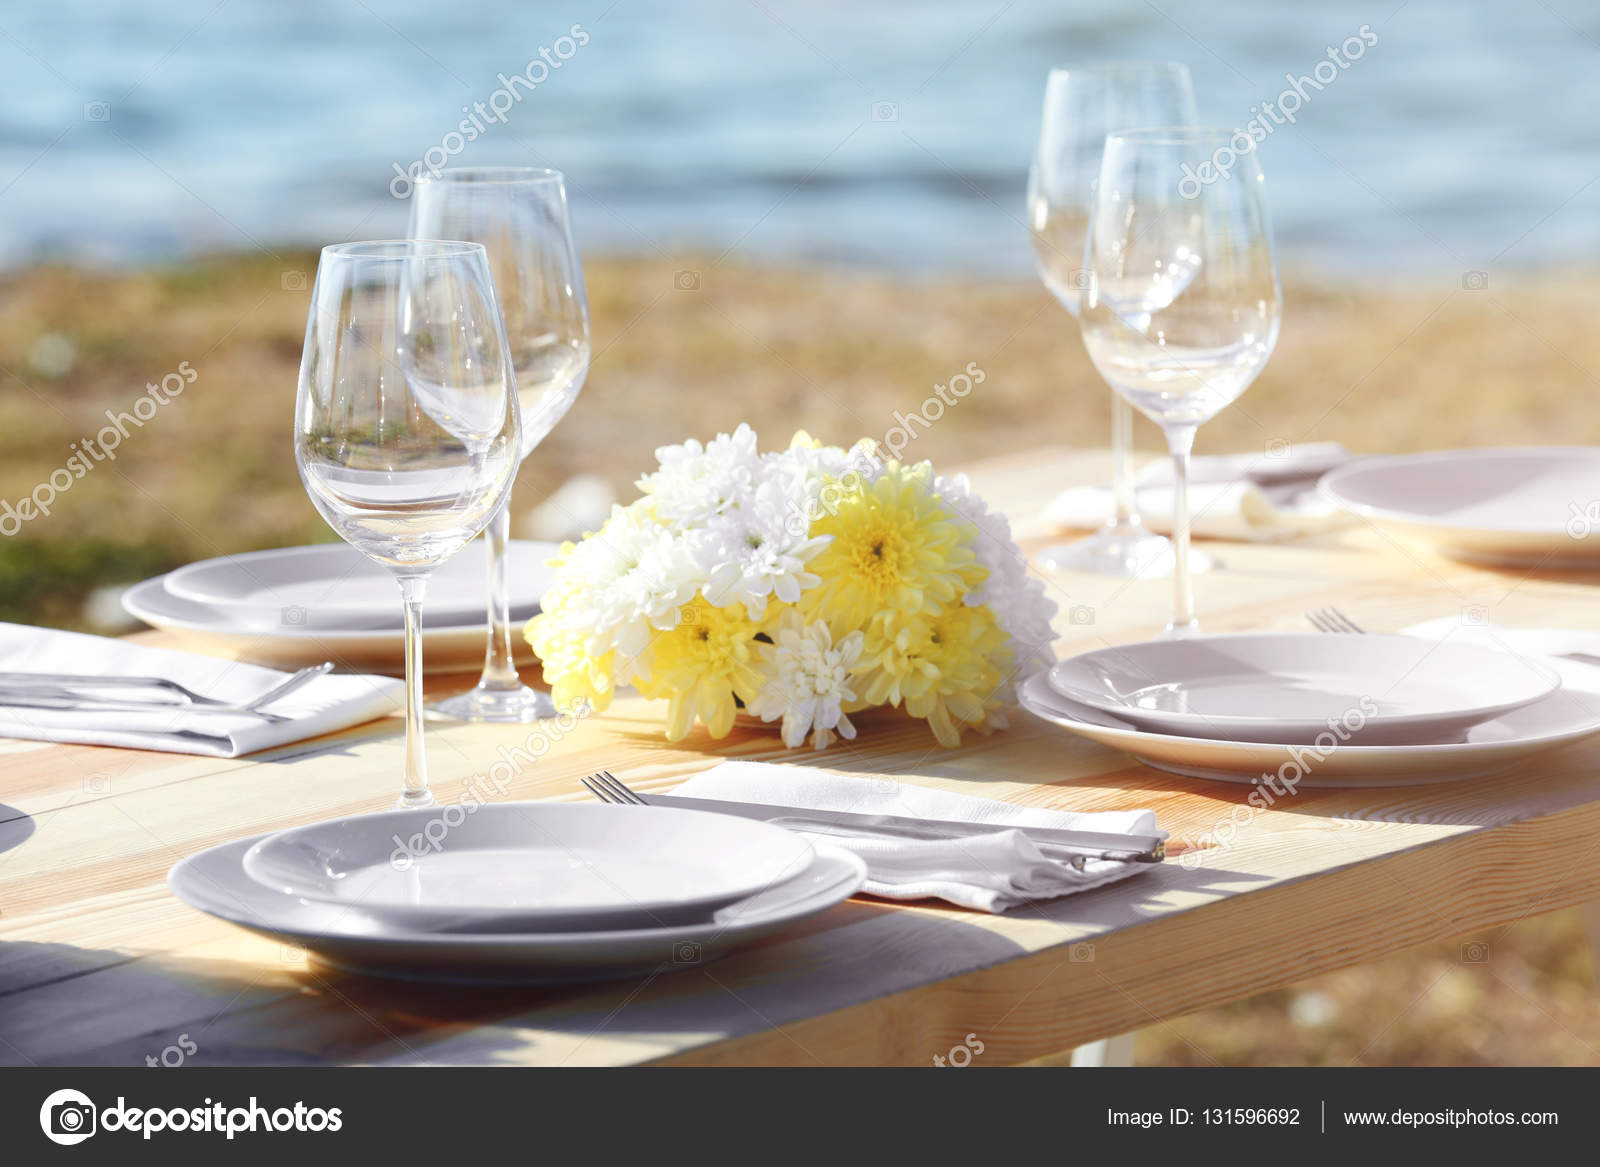 Table Setting For Buffet Catering Party Outdoors Close Up View - Catering table setting